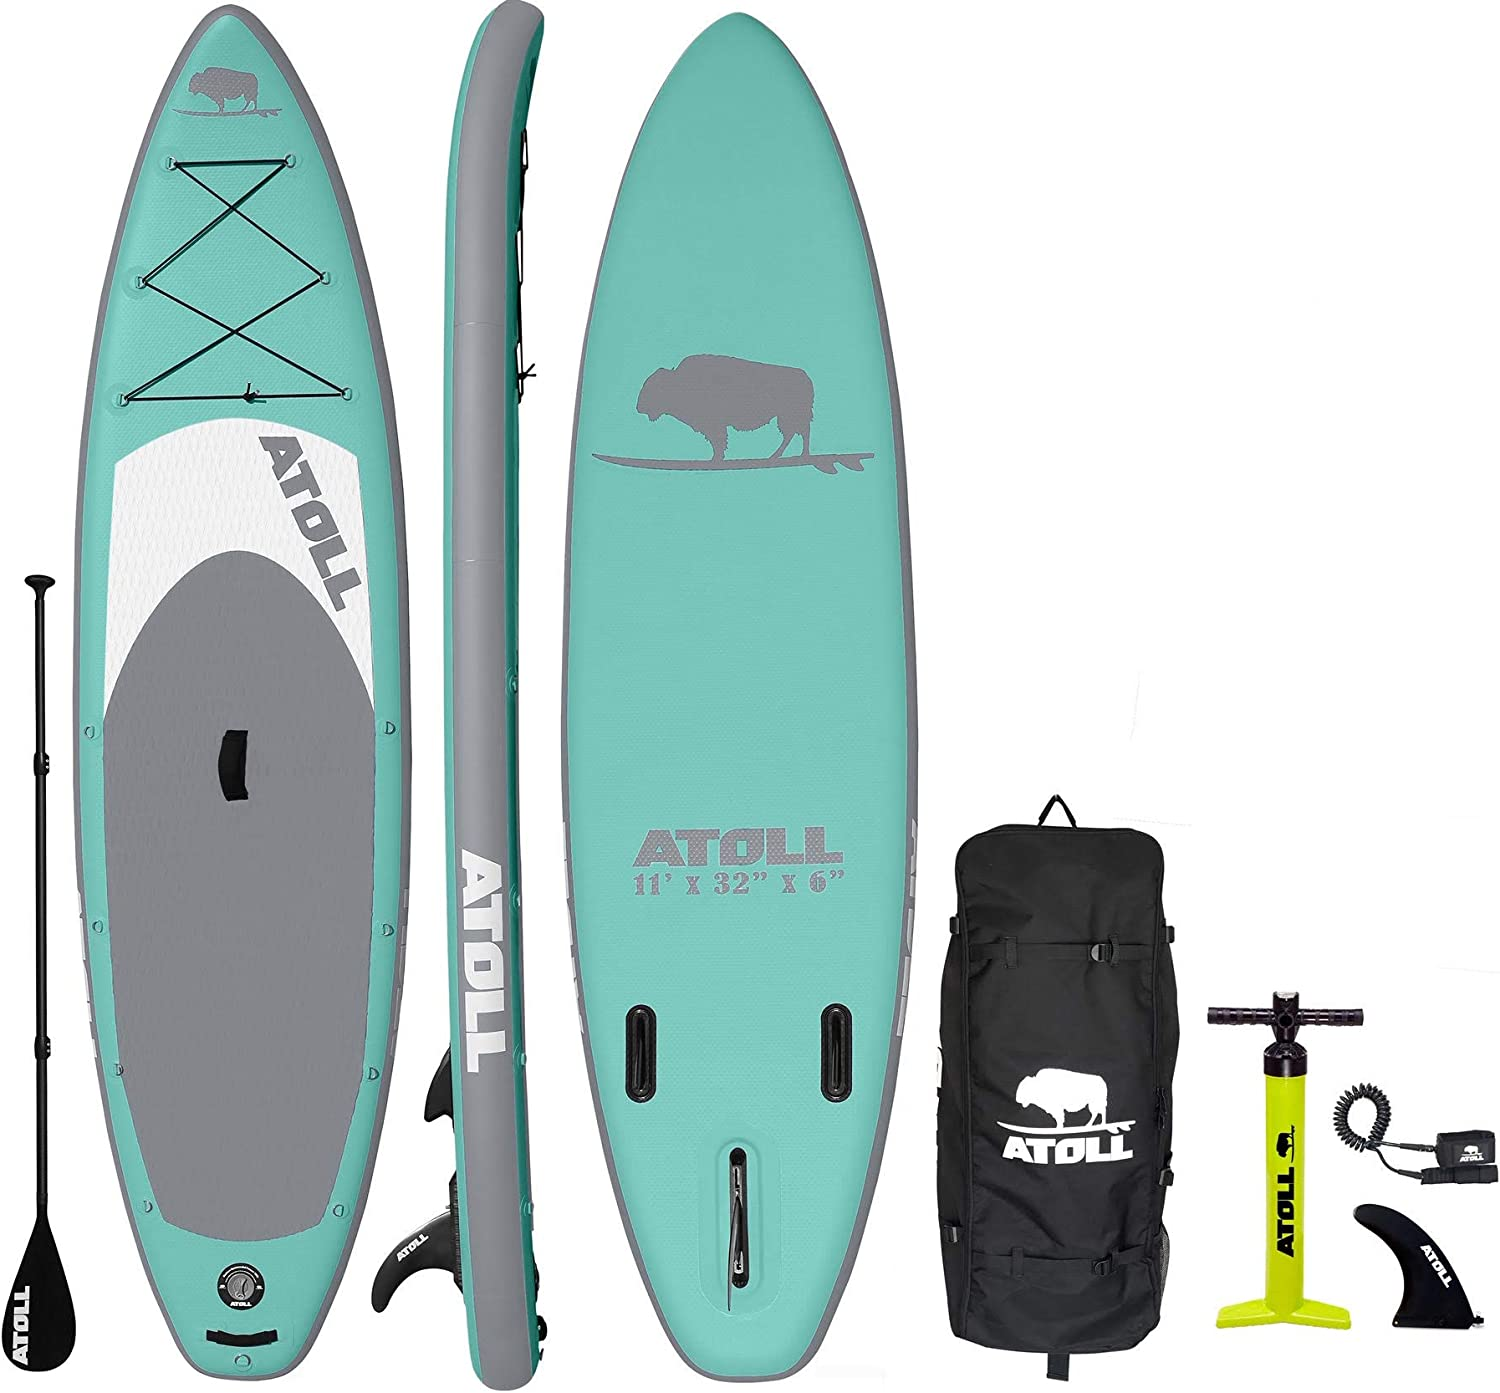 Best Roc Inflatable Stand Up Paddle Boards